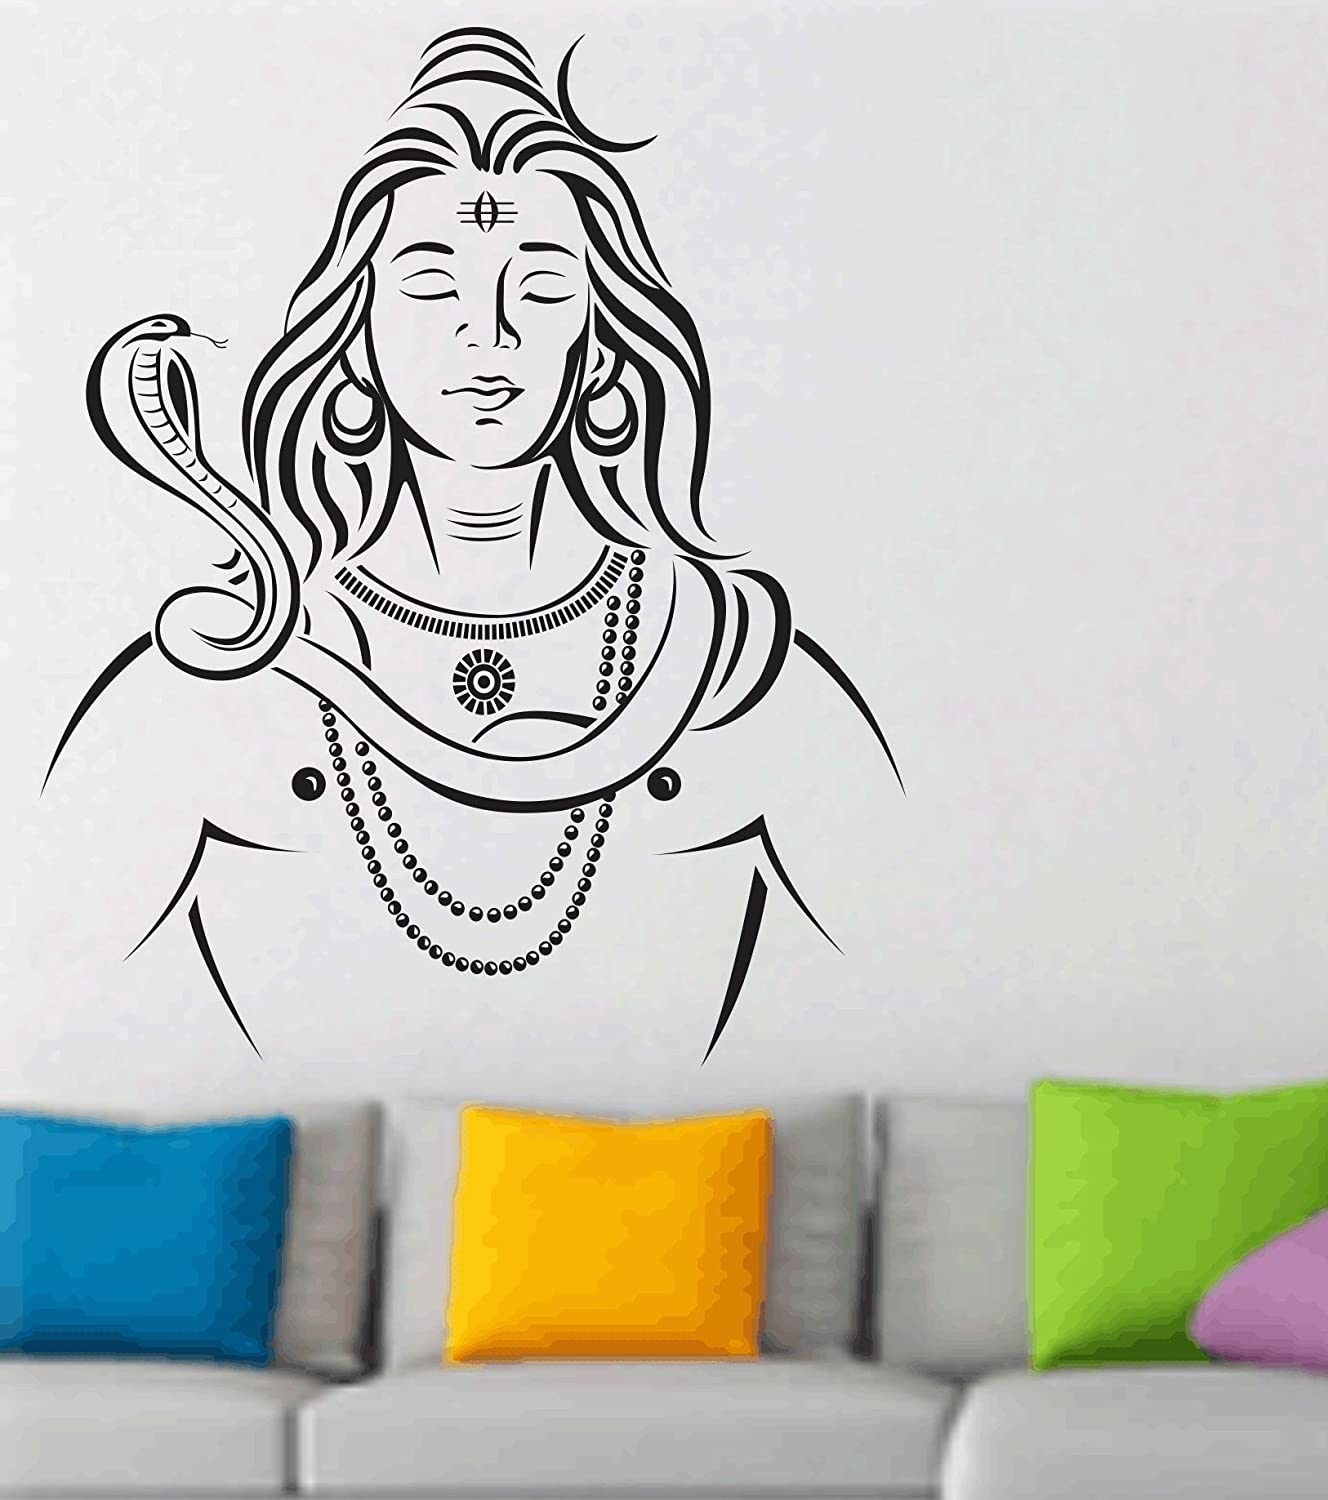 Happy walls meditating lord shiva wall mural wall sticker